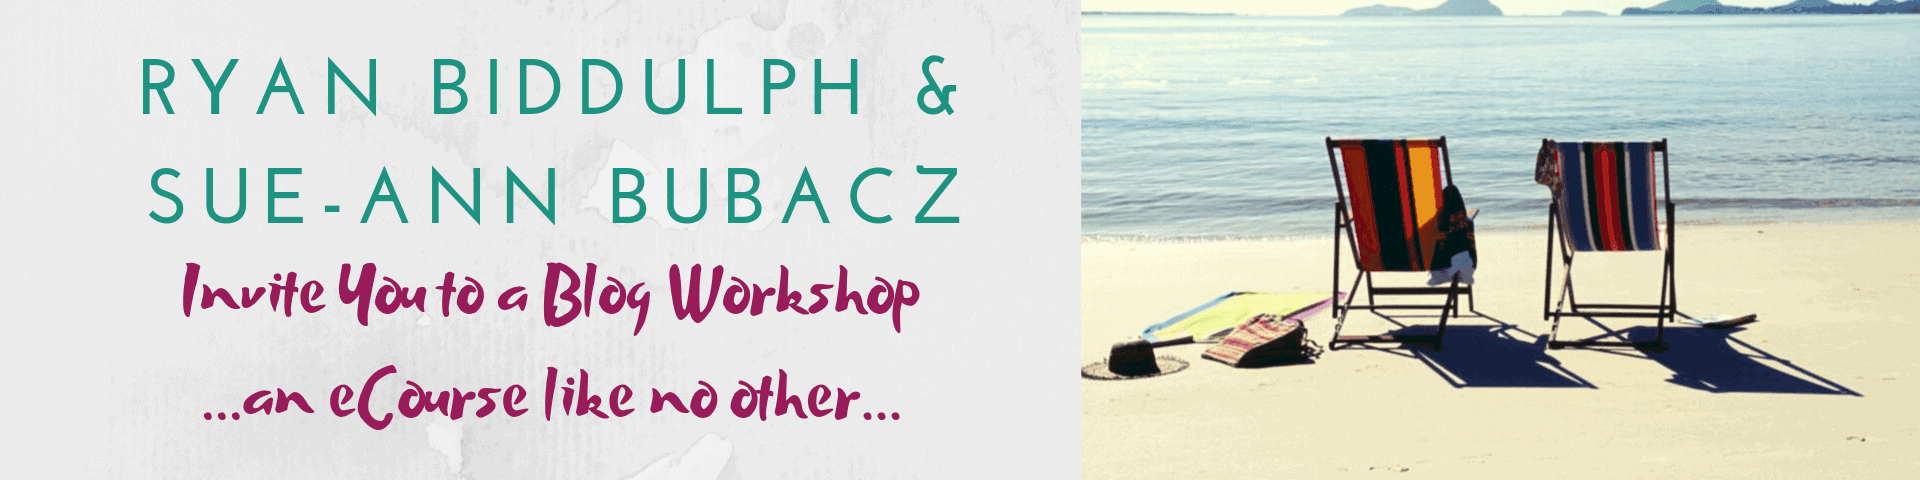 How to Bling Your Blog & Feed That Hog Header Banner invite from Ryan Biddulph & Sue-Ann Bubacz to Join a Blog Workshop Like No Other